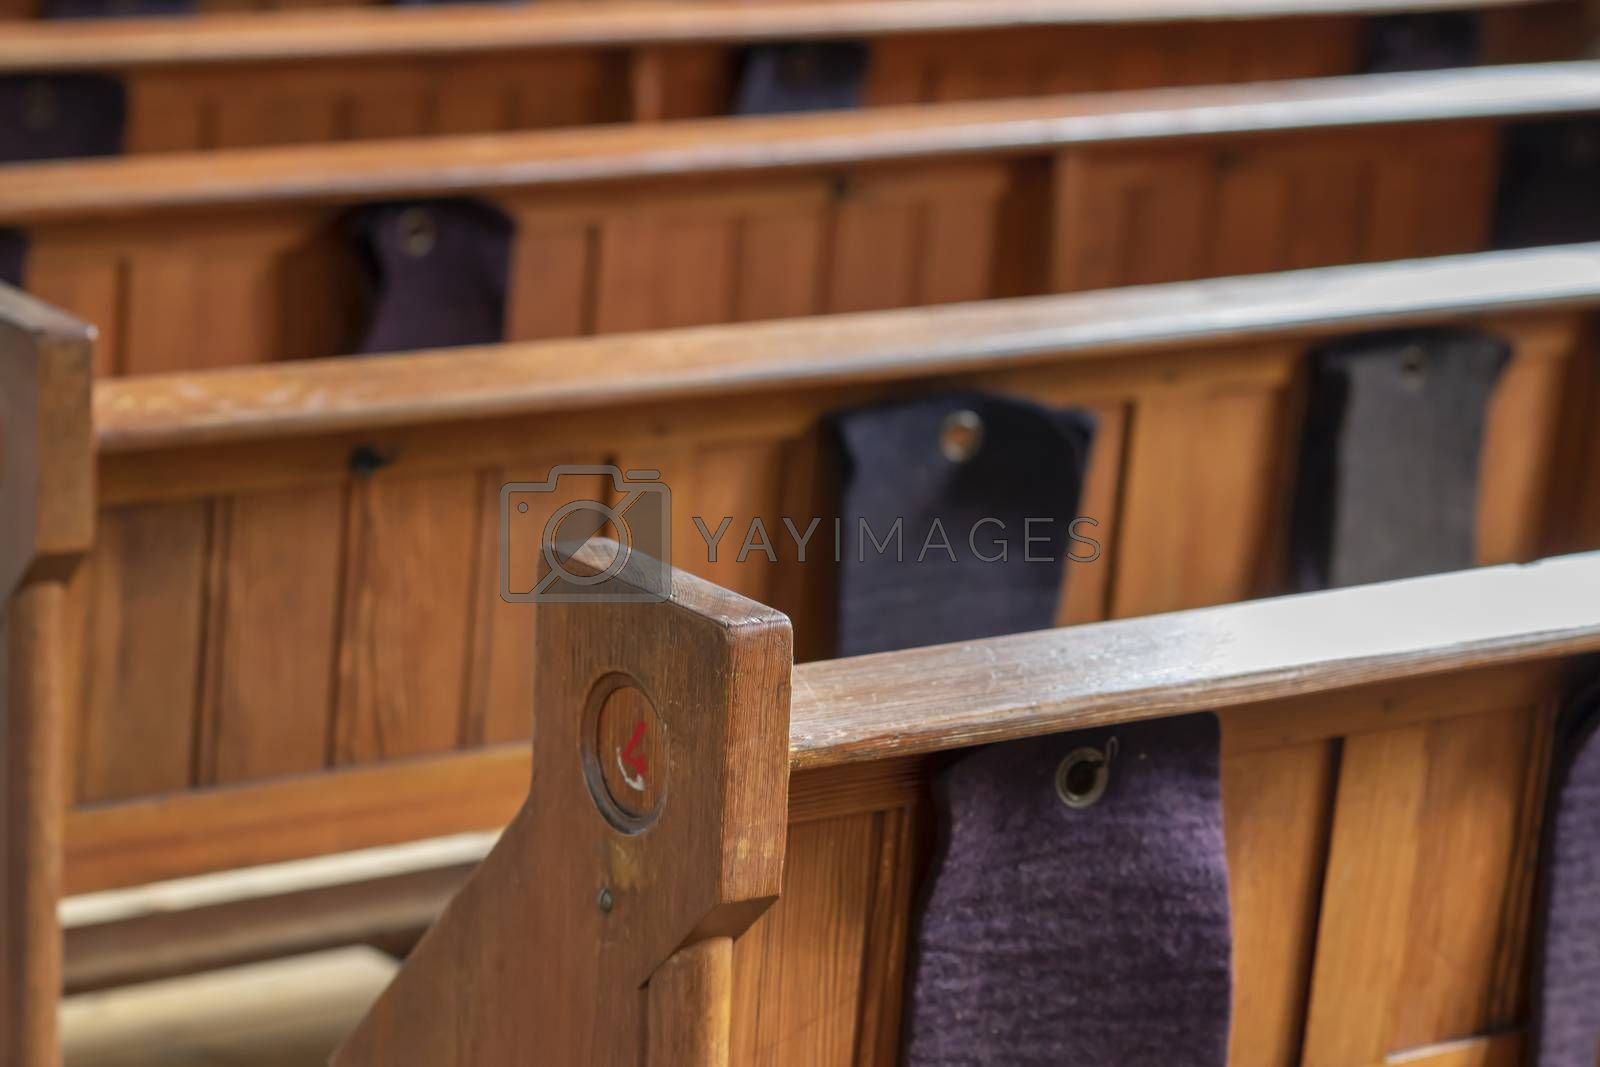 Pews in an old church  by Tofotografie